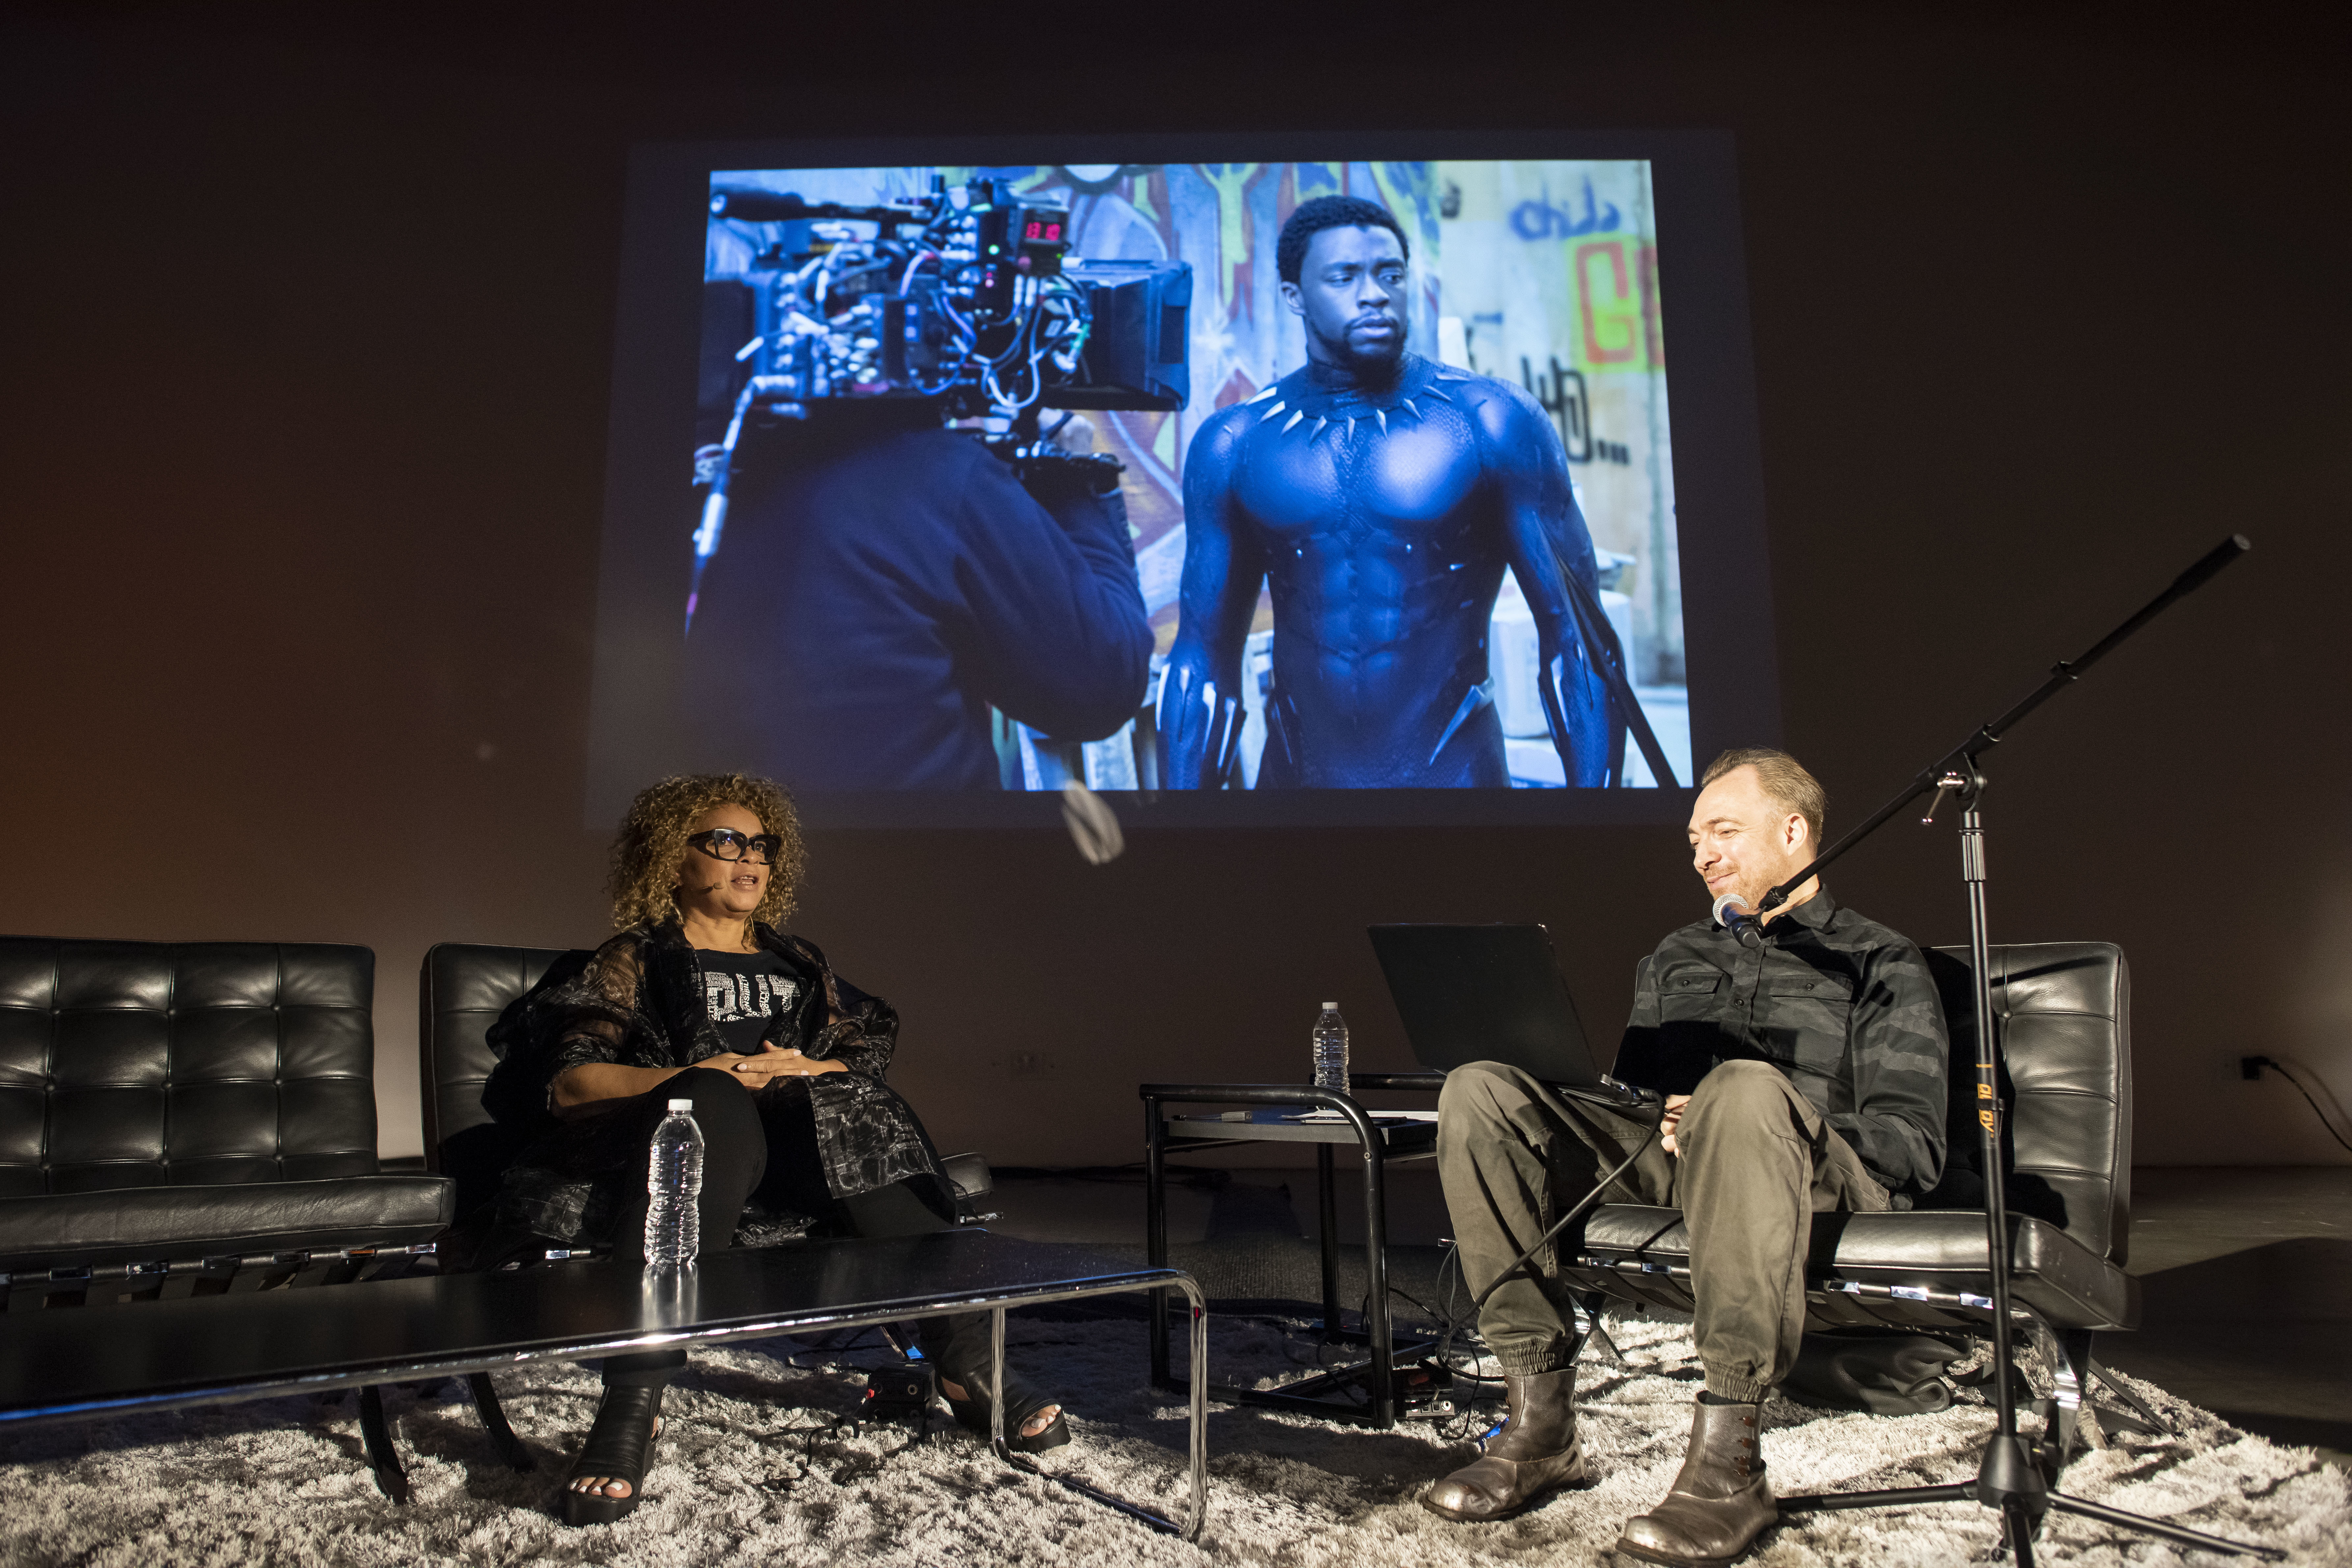 Ruth Carter and Liam Young discussing about black panther movie costumes